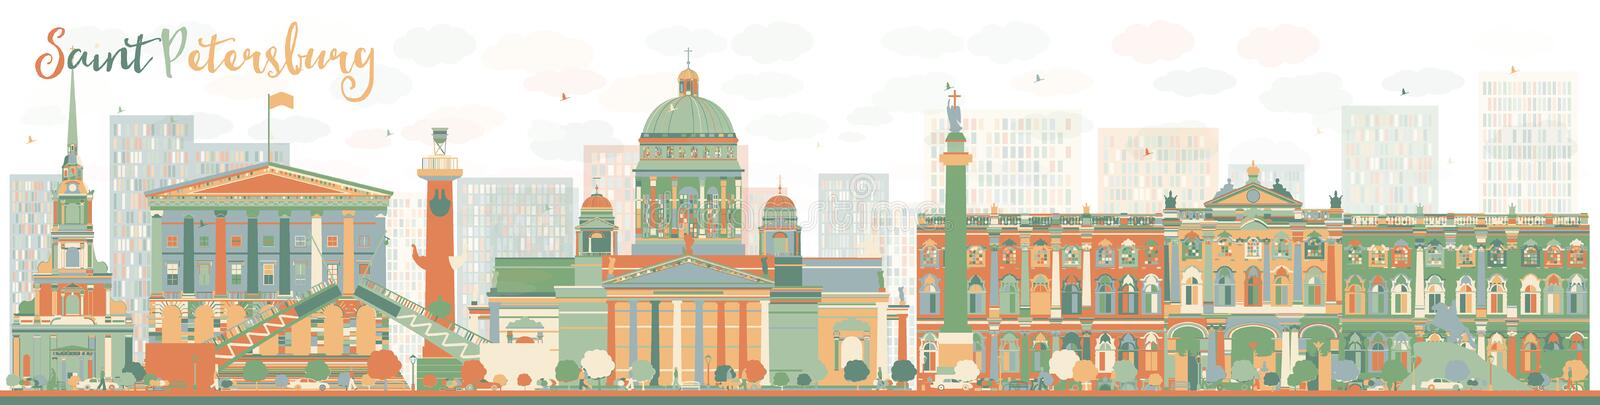 Abstrakt St Petersburg horisont med färggränsmärken royaltyfri illustrationer